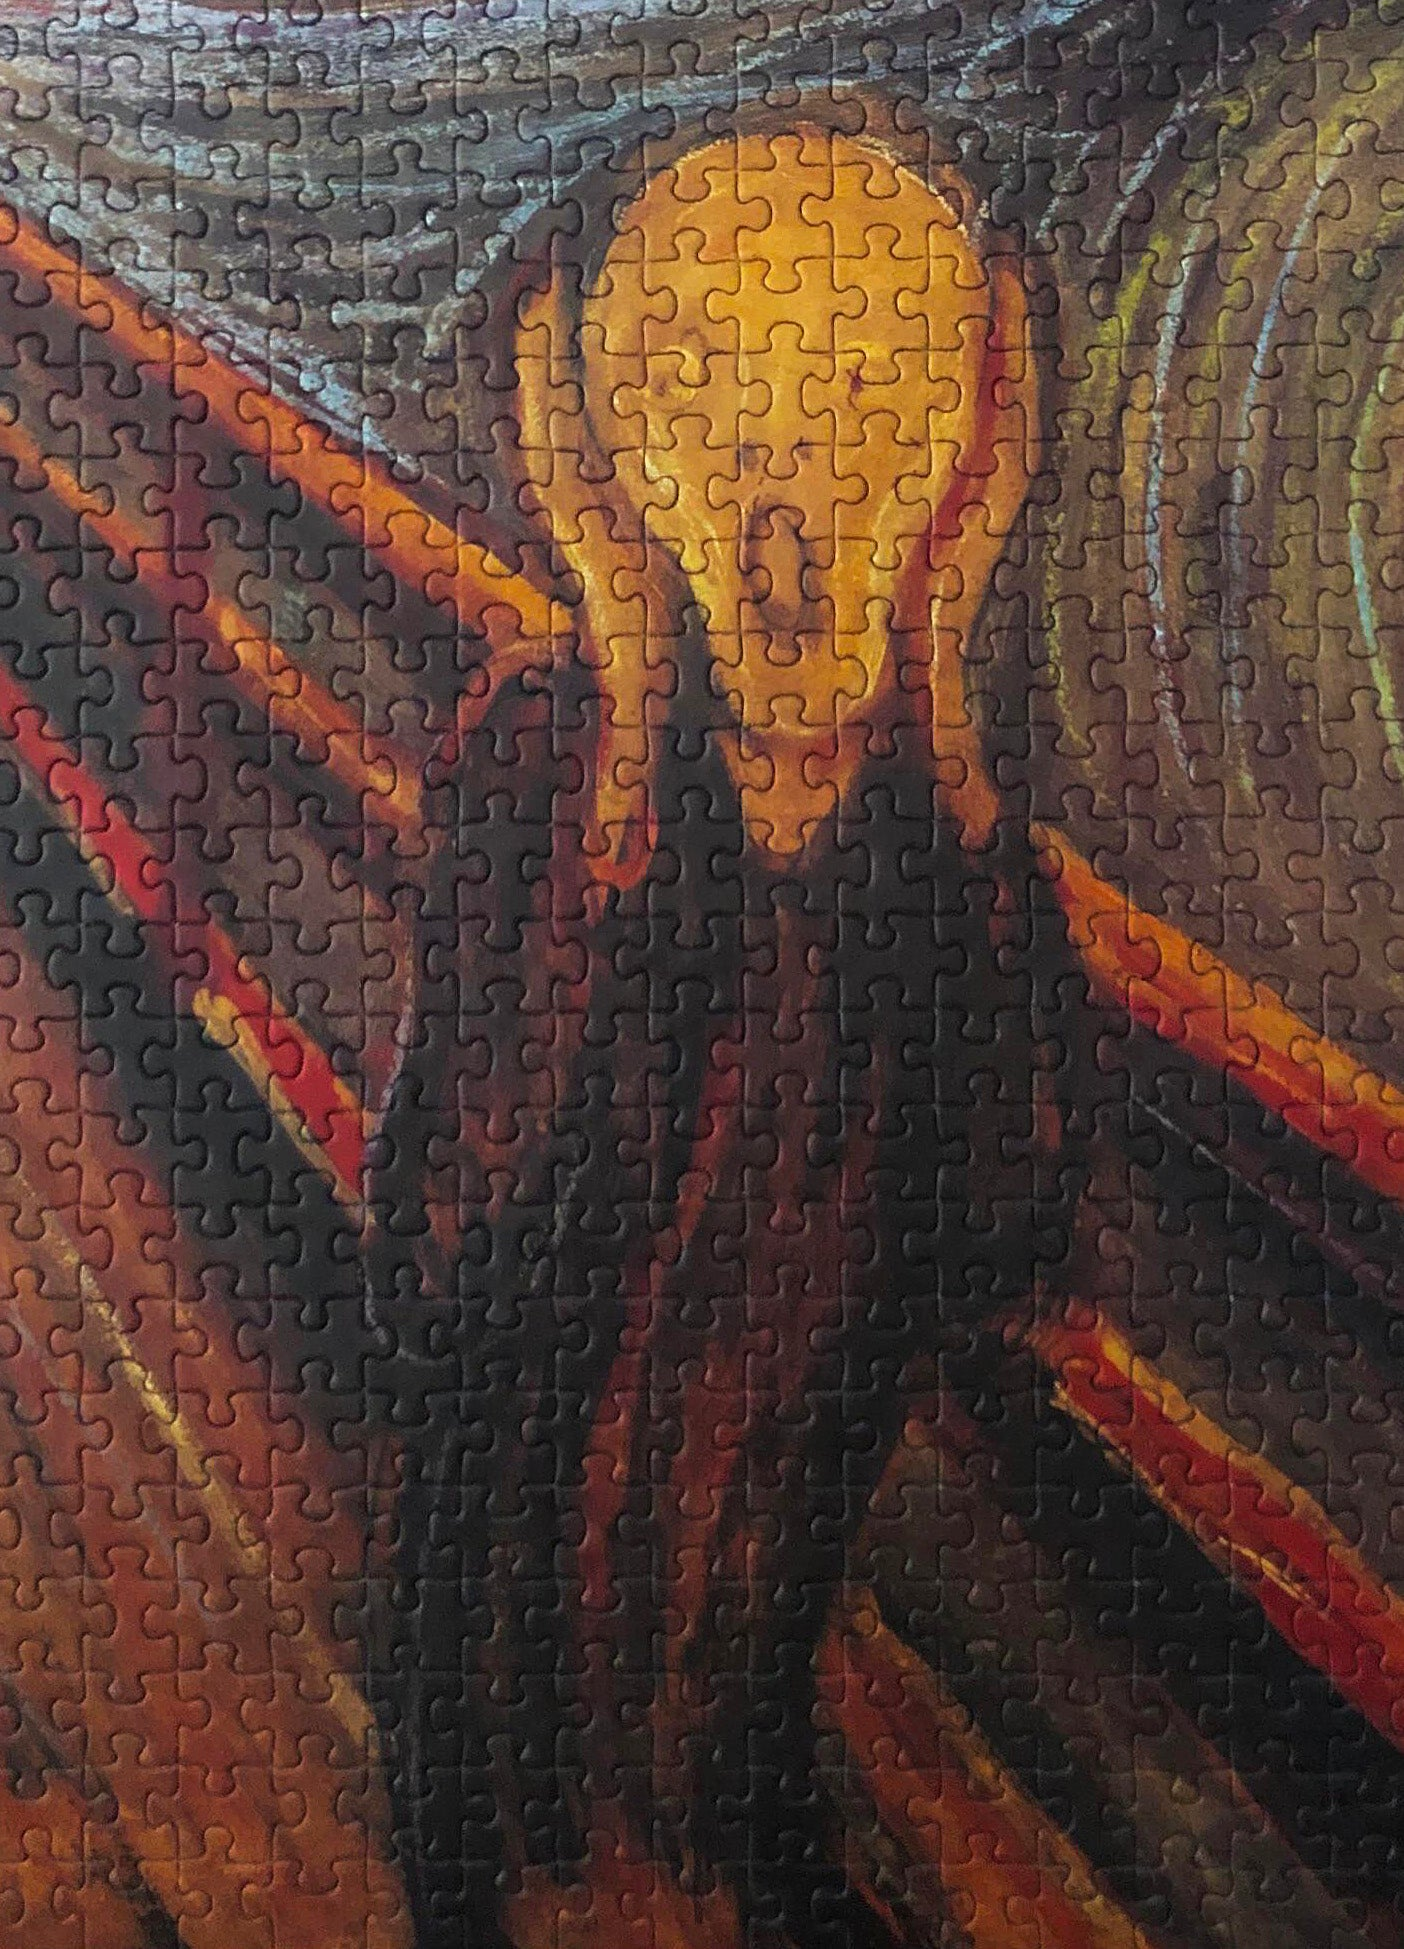 1000-piece Edvard Munch The Scream Jigsaw Puzzle - Rest In Pieces